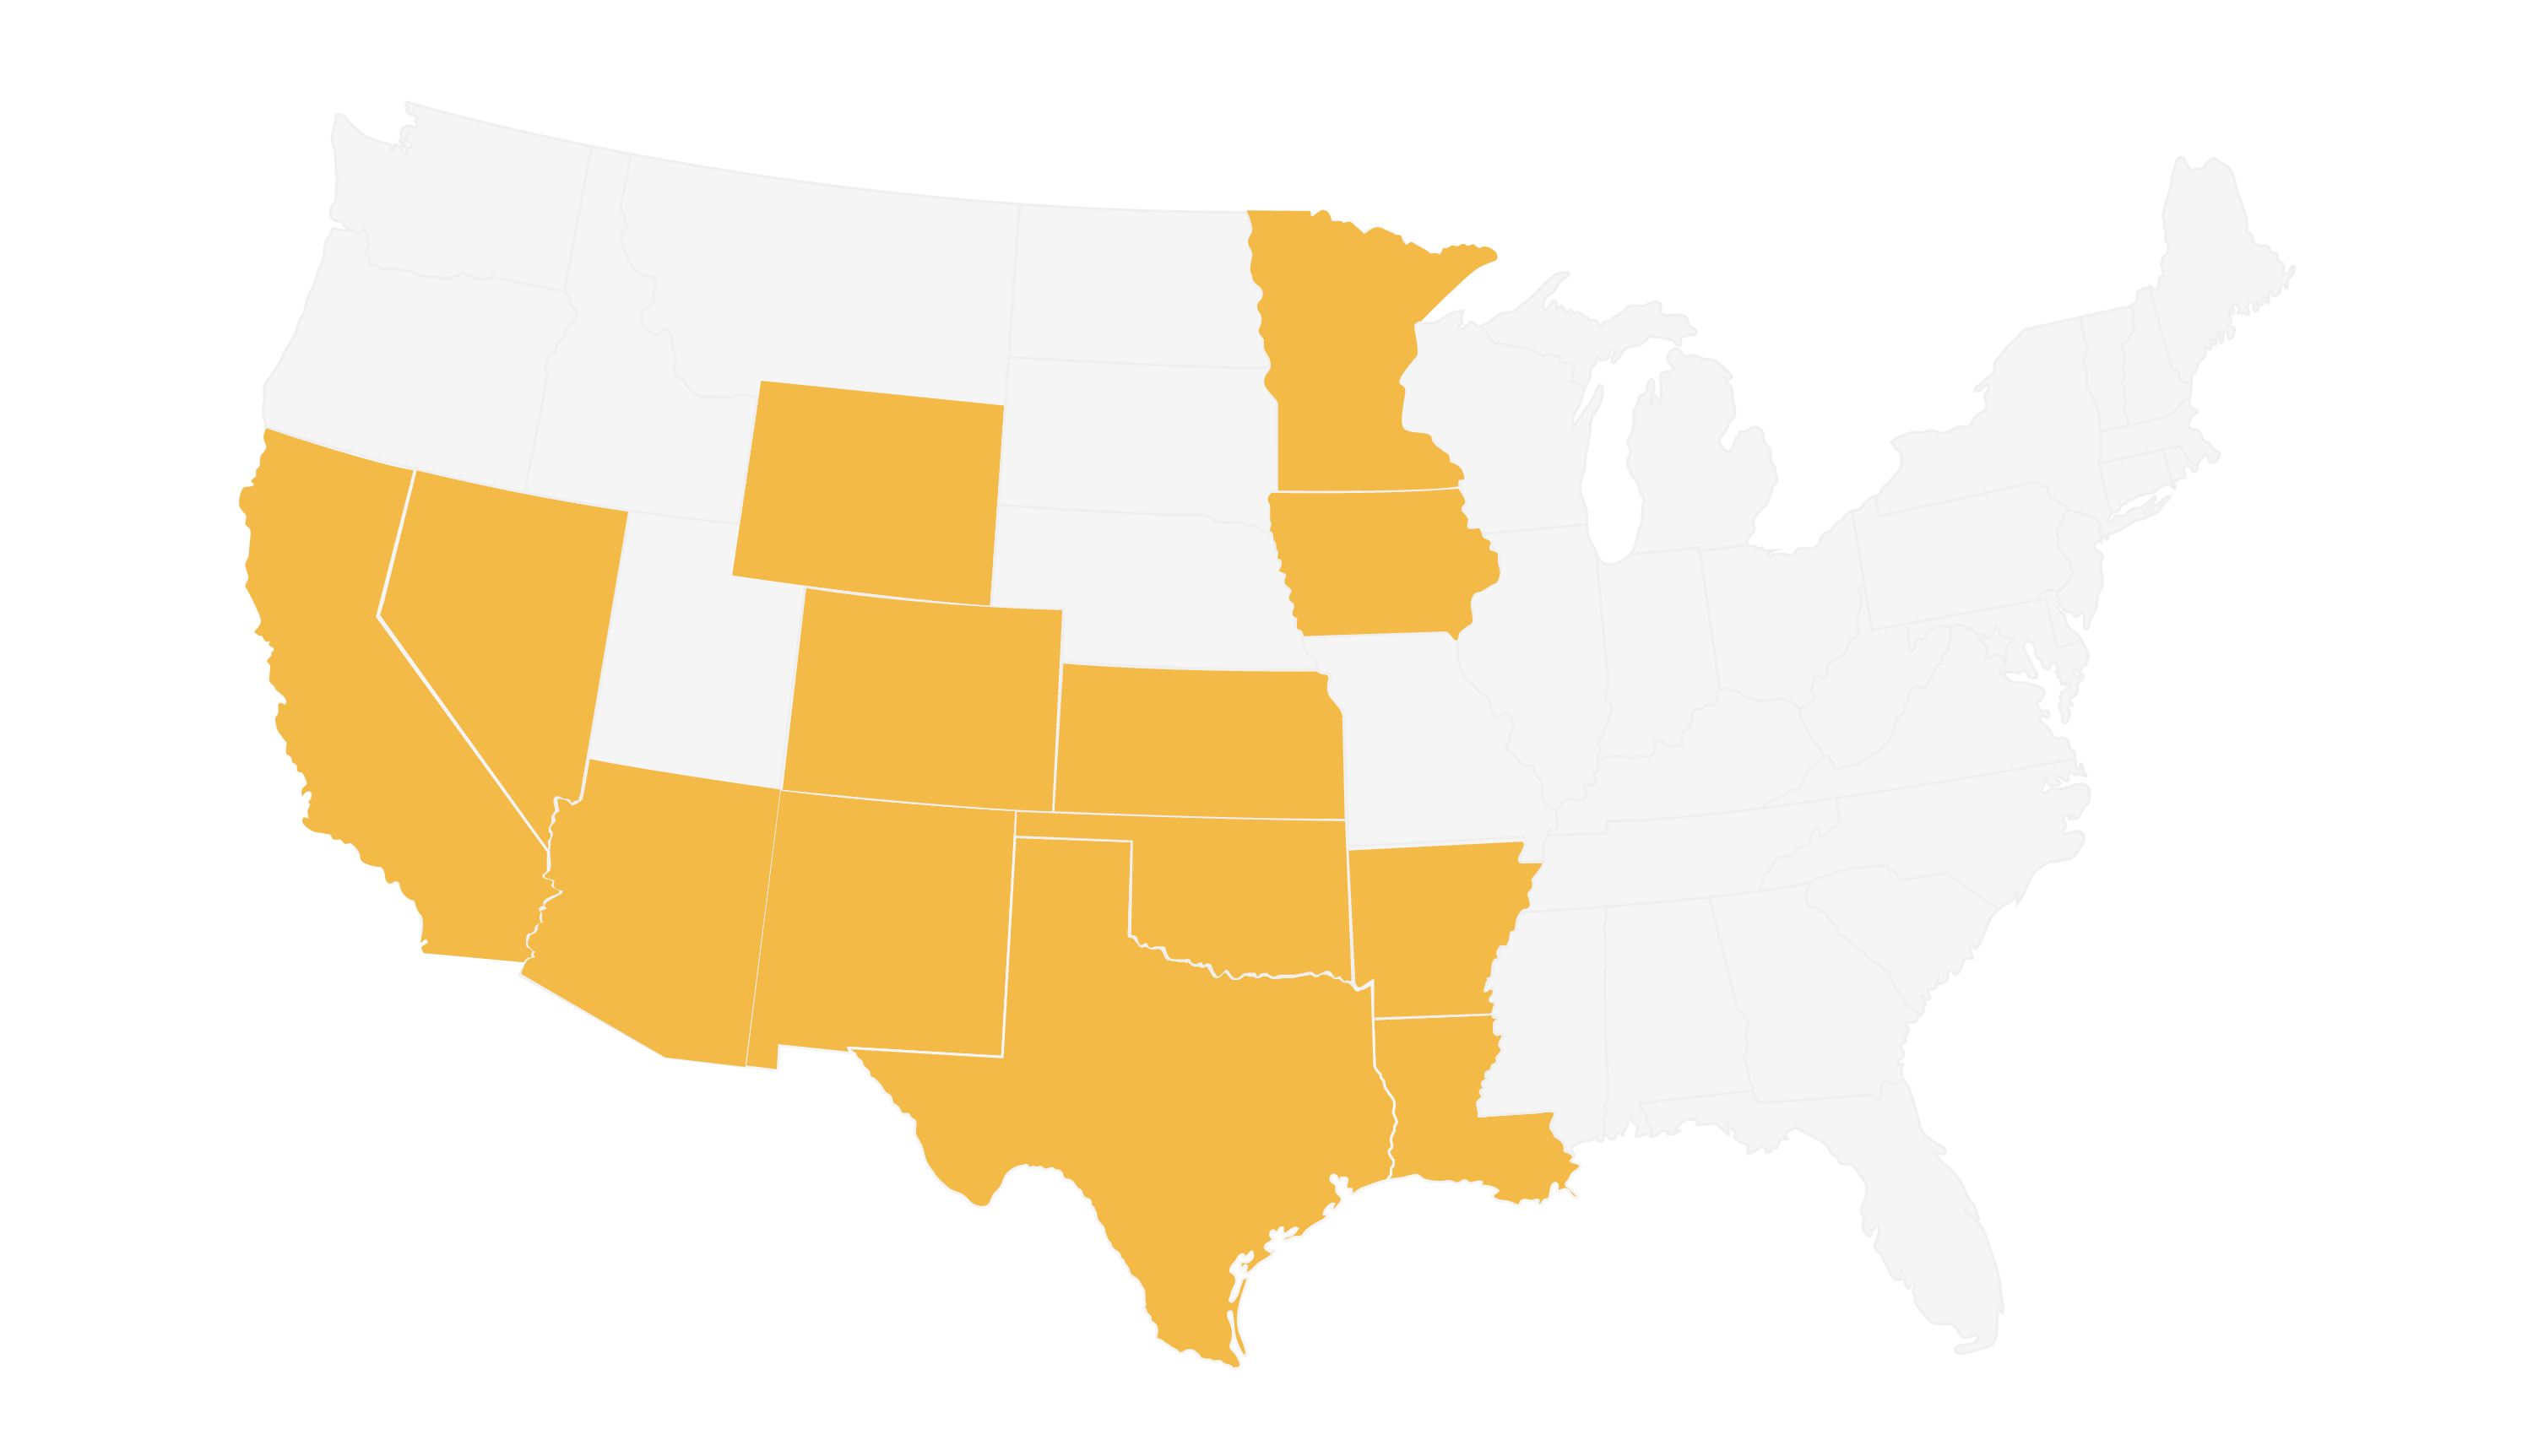 White map of US with 13 states in light orange. Shows the states where general contract, NC Sturgeon, does industrial and commercial building projects